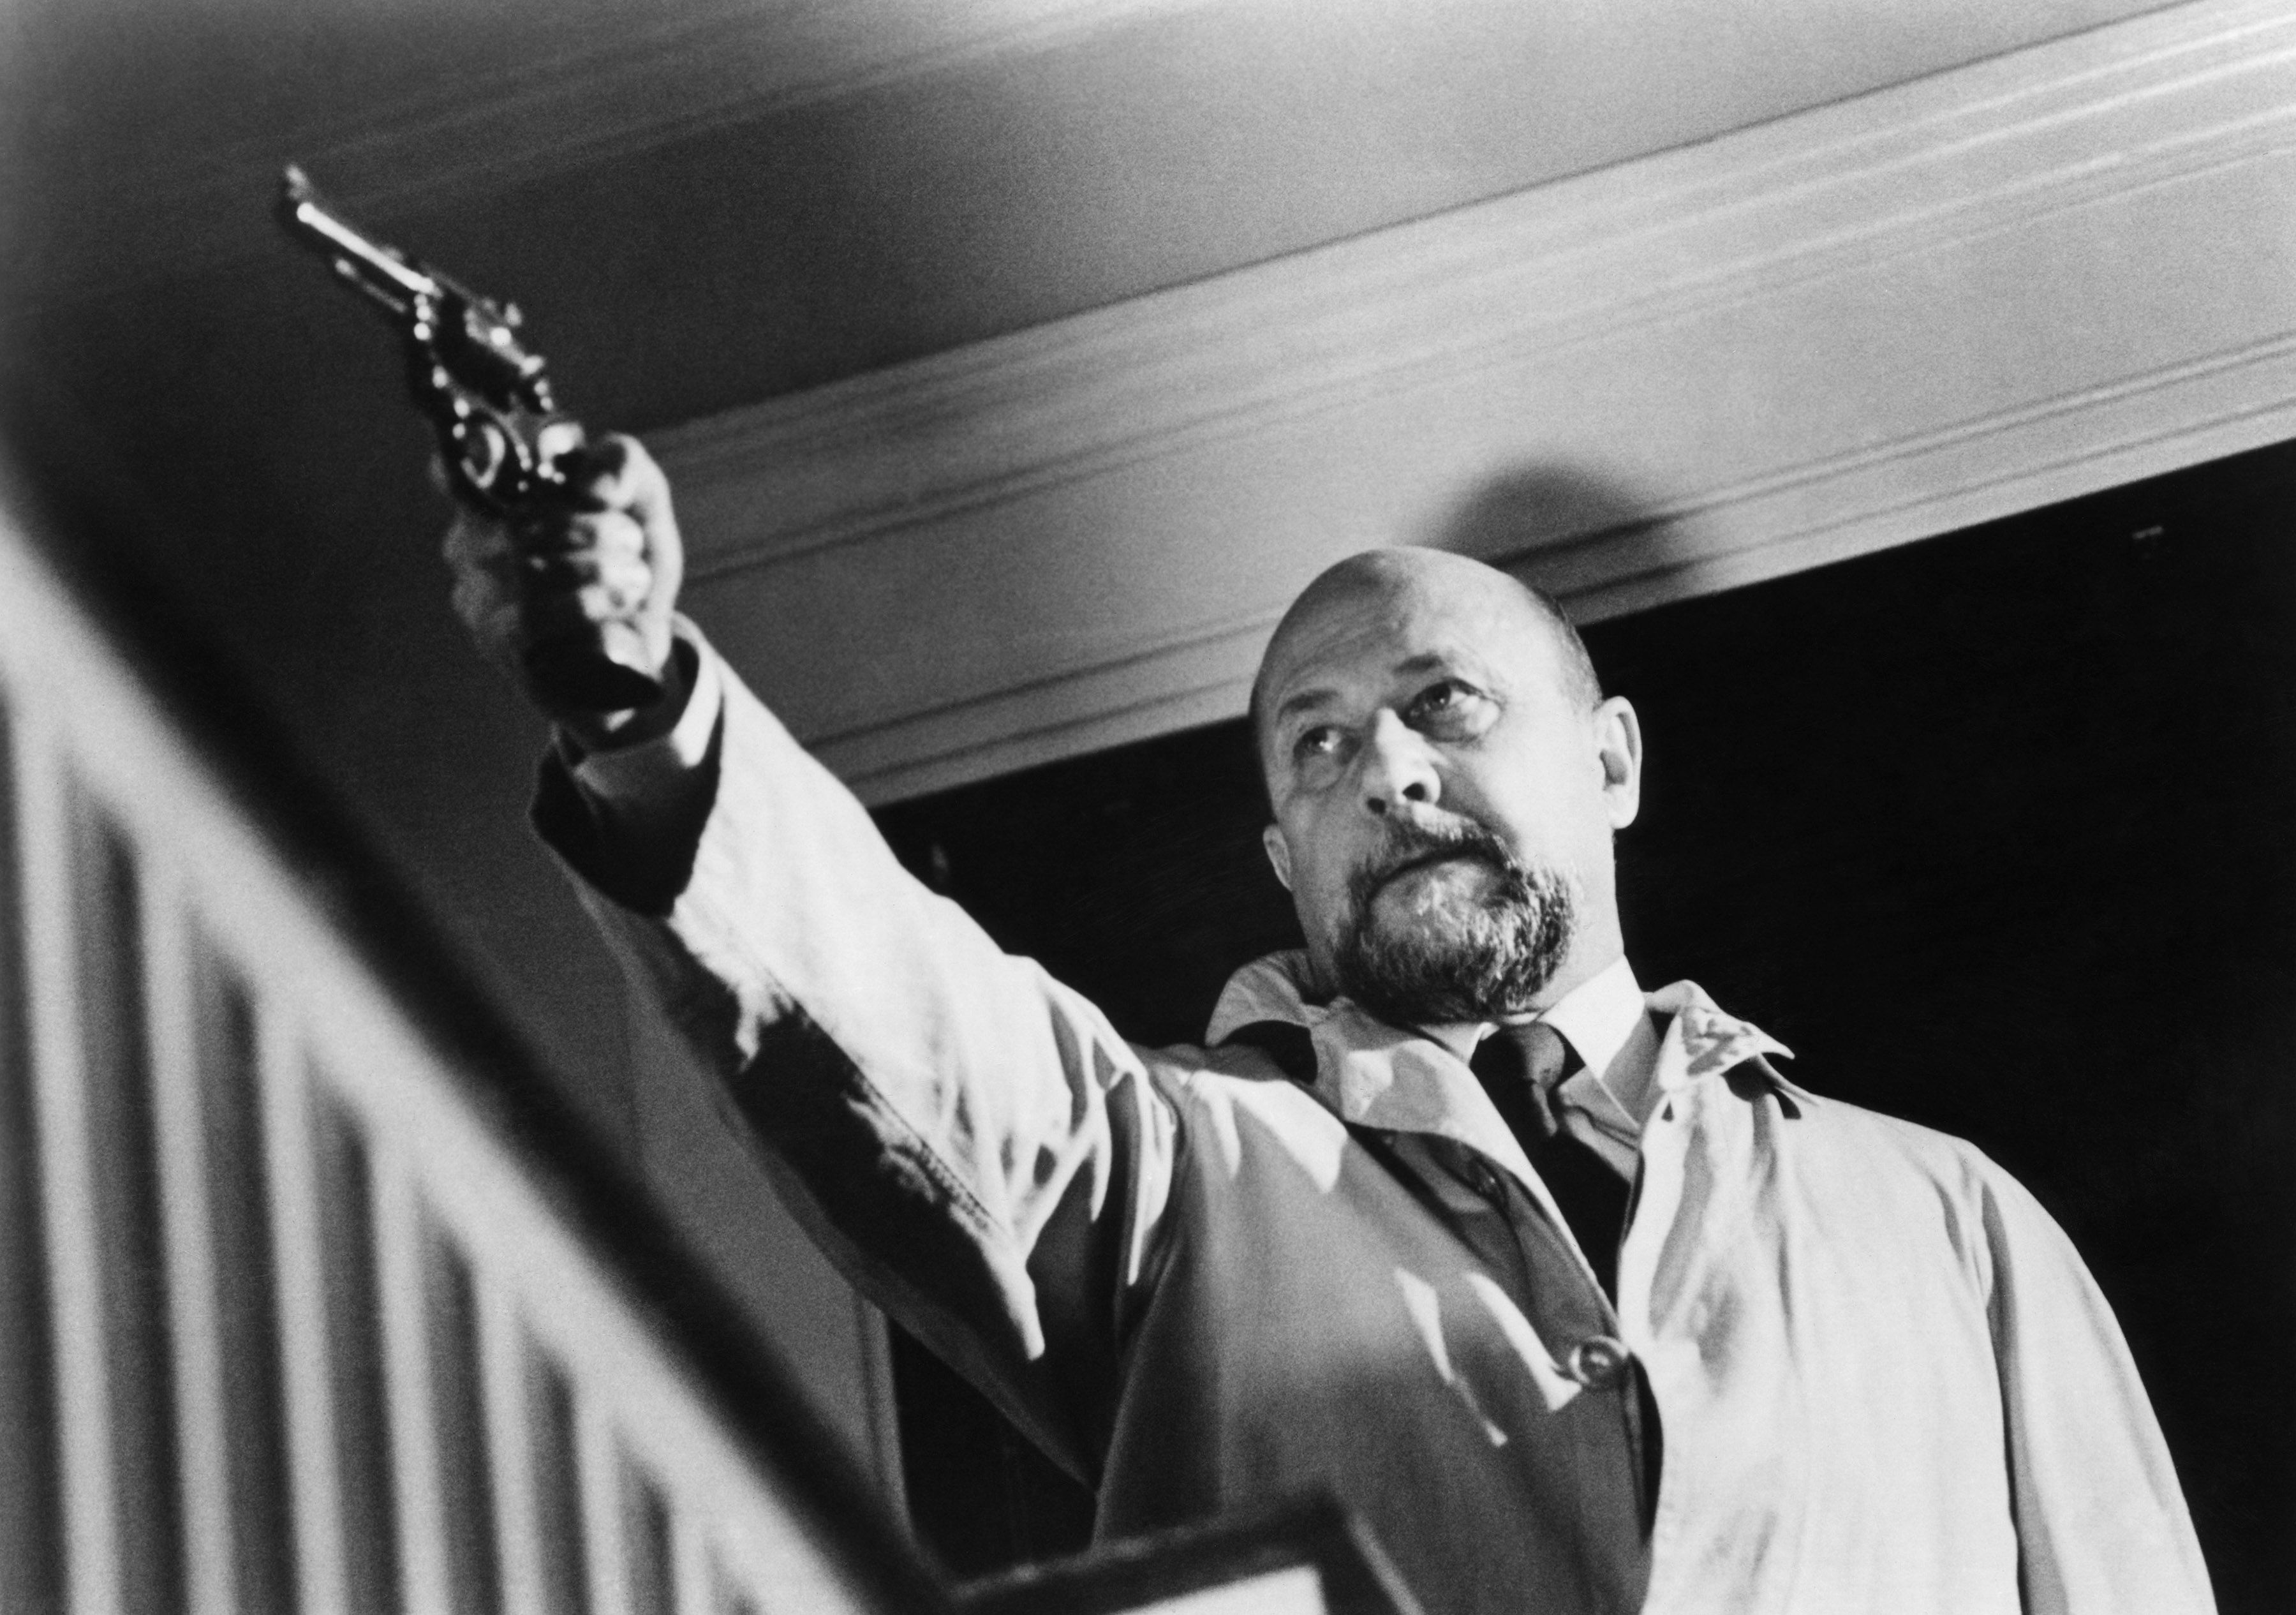 here's how dr. loomis was going to die in an early version of this